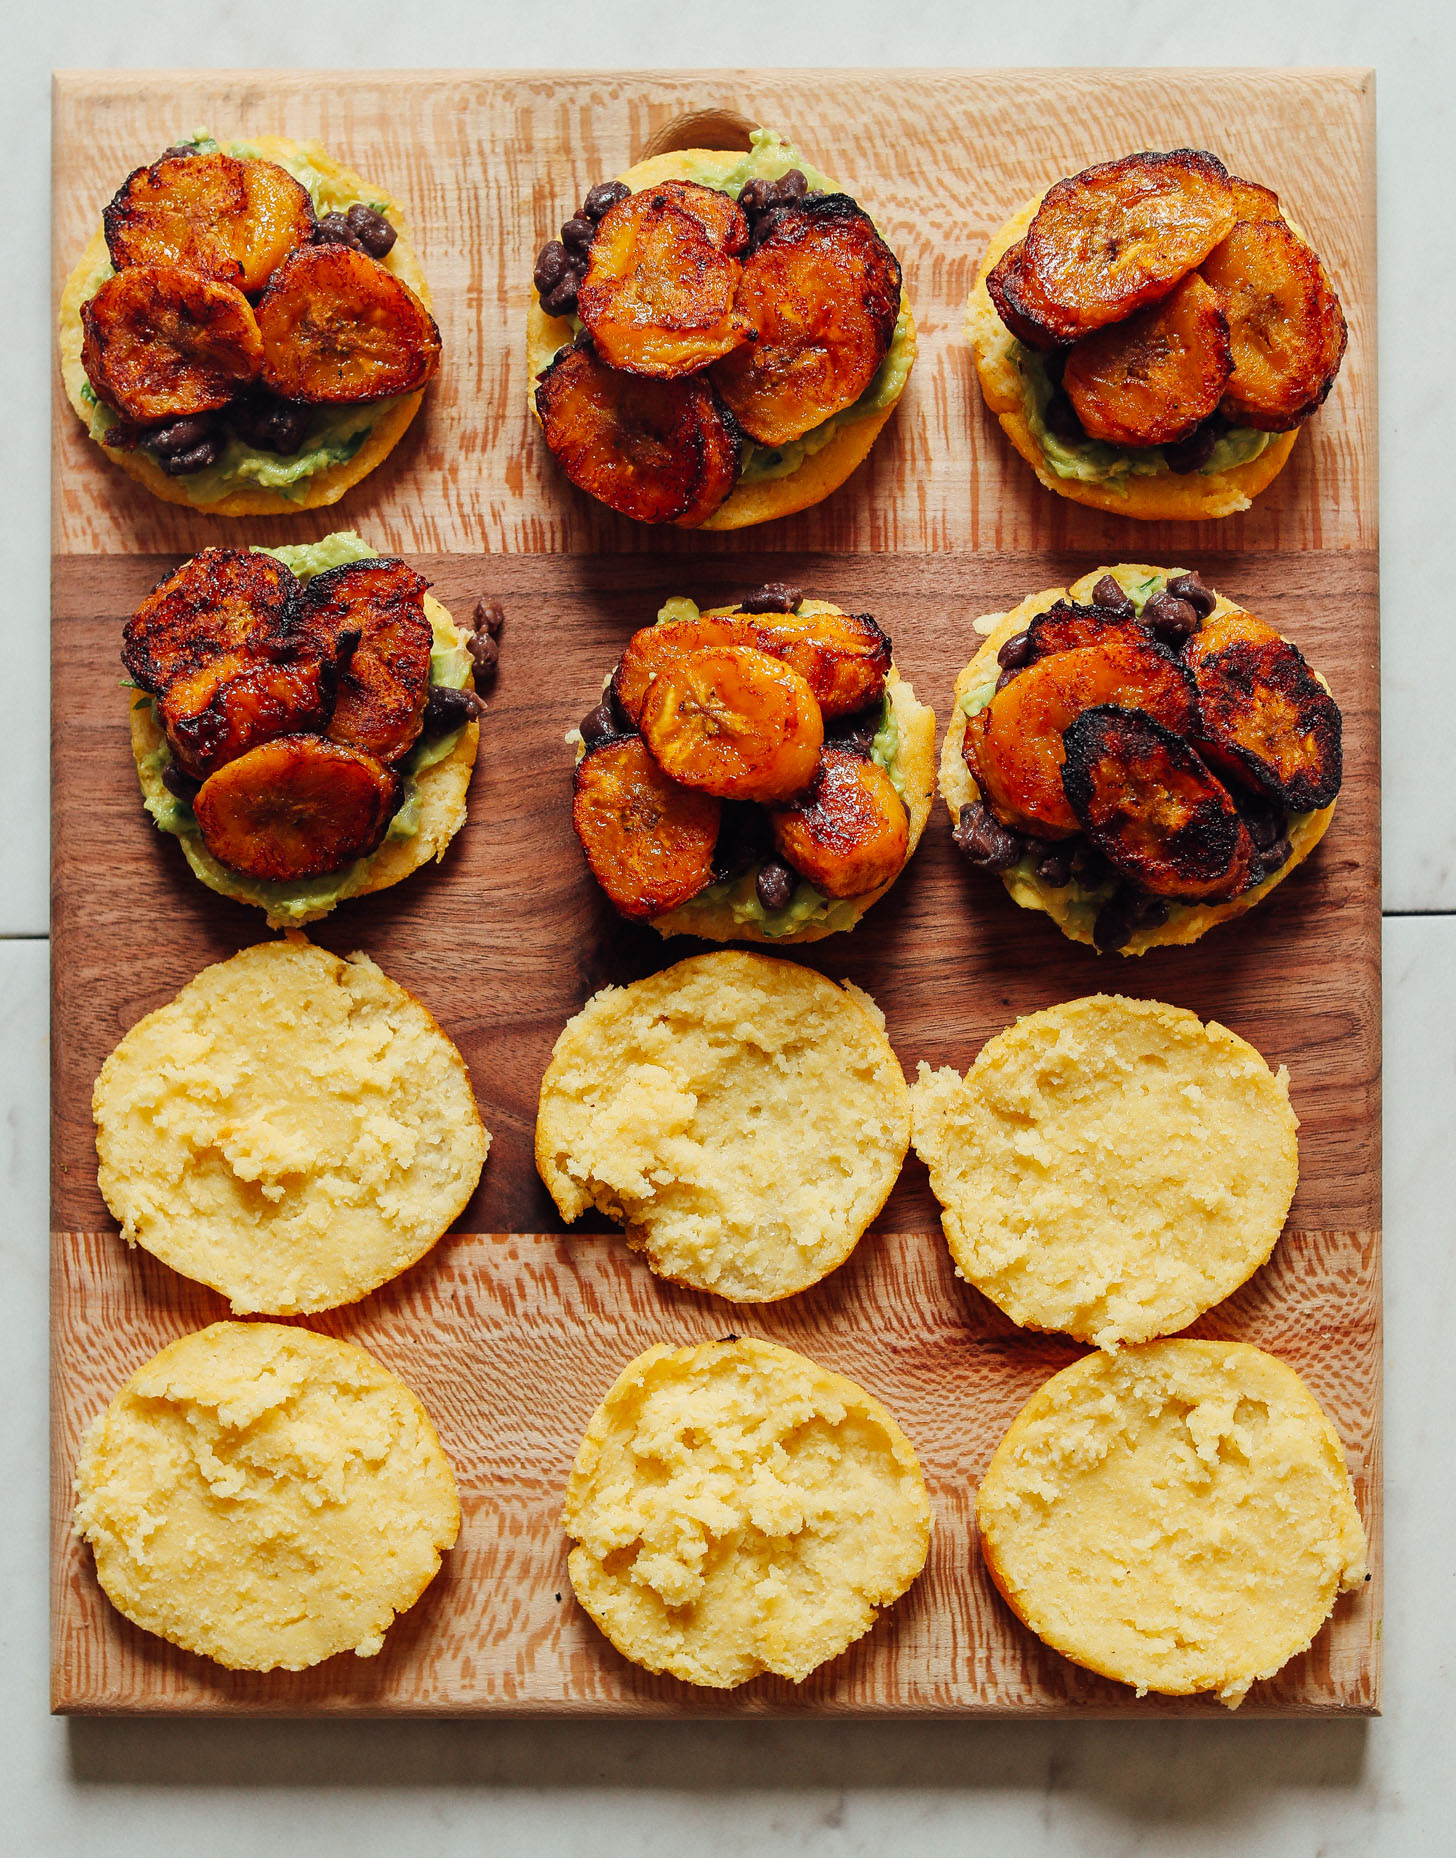 Open-faced Vegan Arepa Sandwiches topped with guacamole, black beans, and plantains